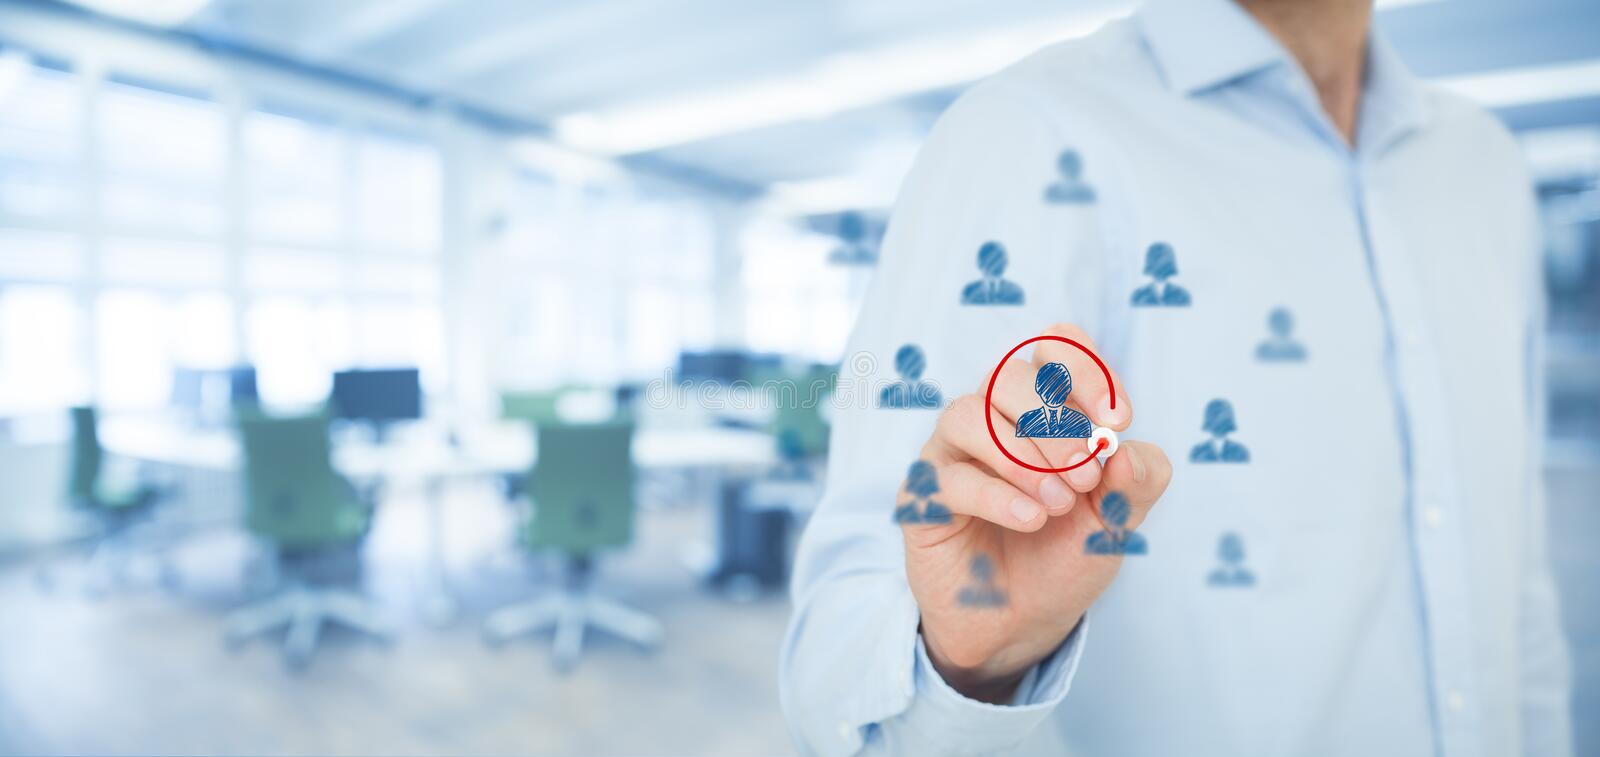 Marketing segmentation and leader. Marketing segmentation and targeting, personalization, individual customer care (service), CRM and leader concepts. Human stock image